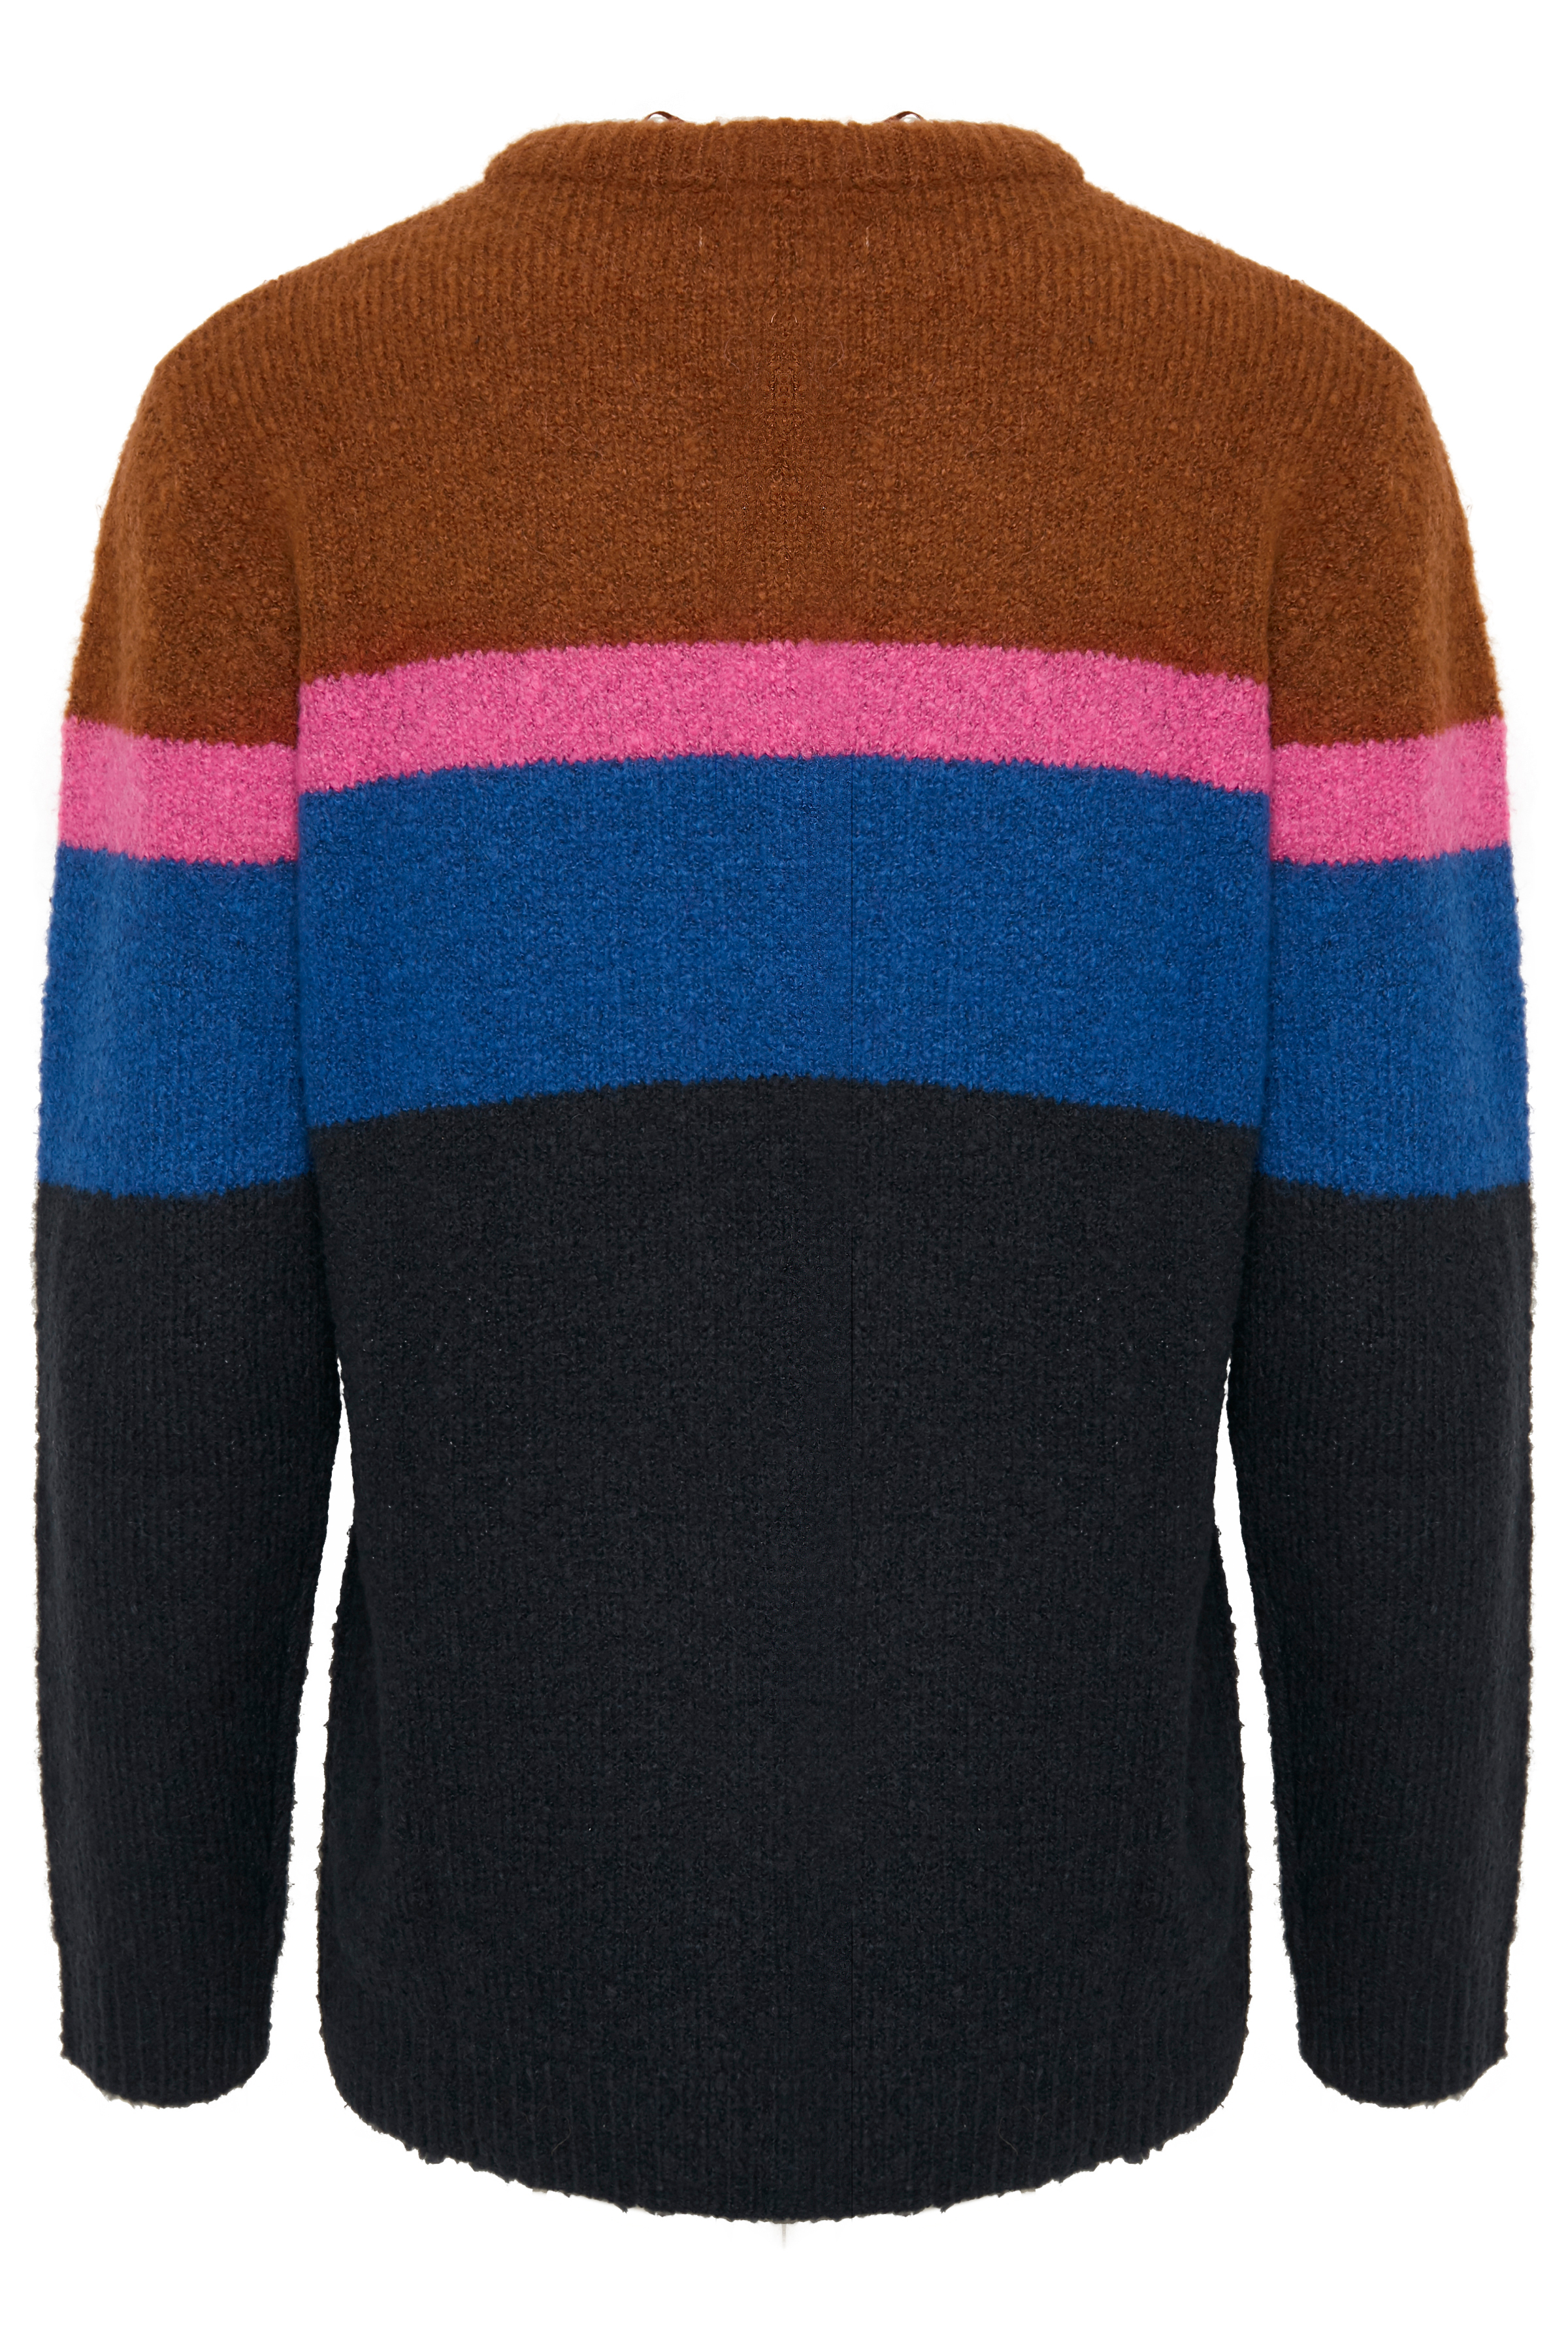 Black combi mel. Knitted pullover from b.young – Buy Black combi mel. Knitted pullover from size XS-XXL here